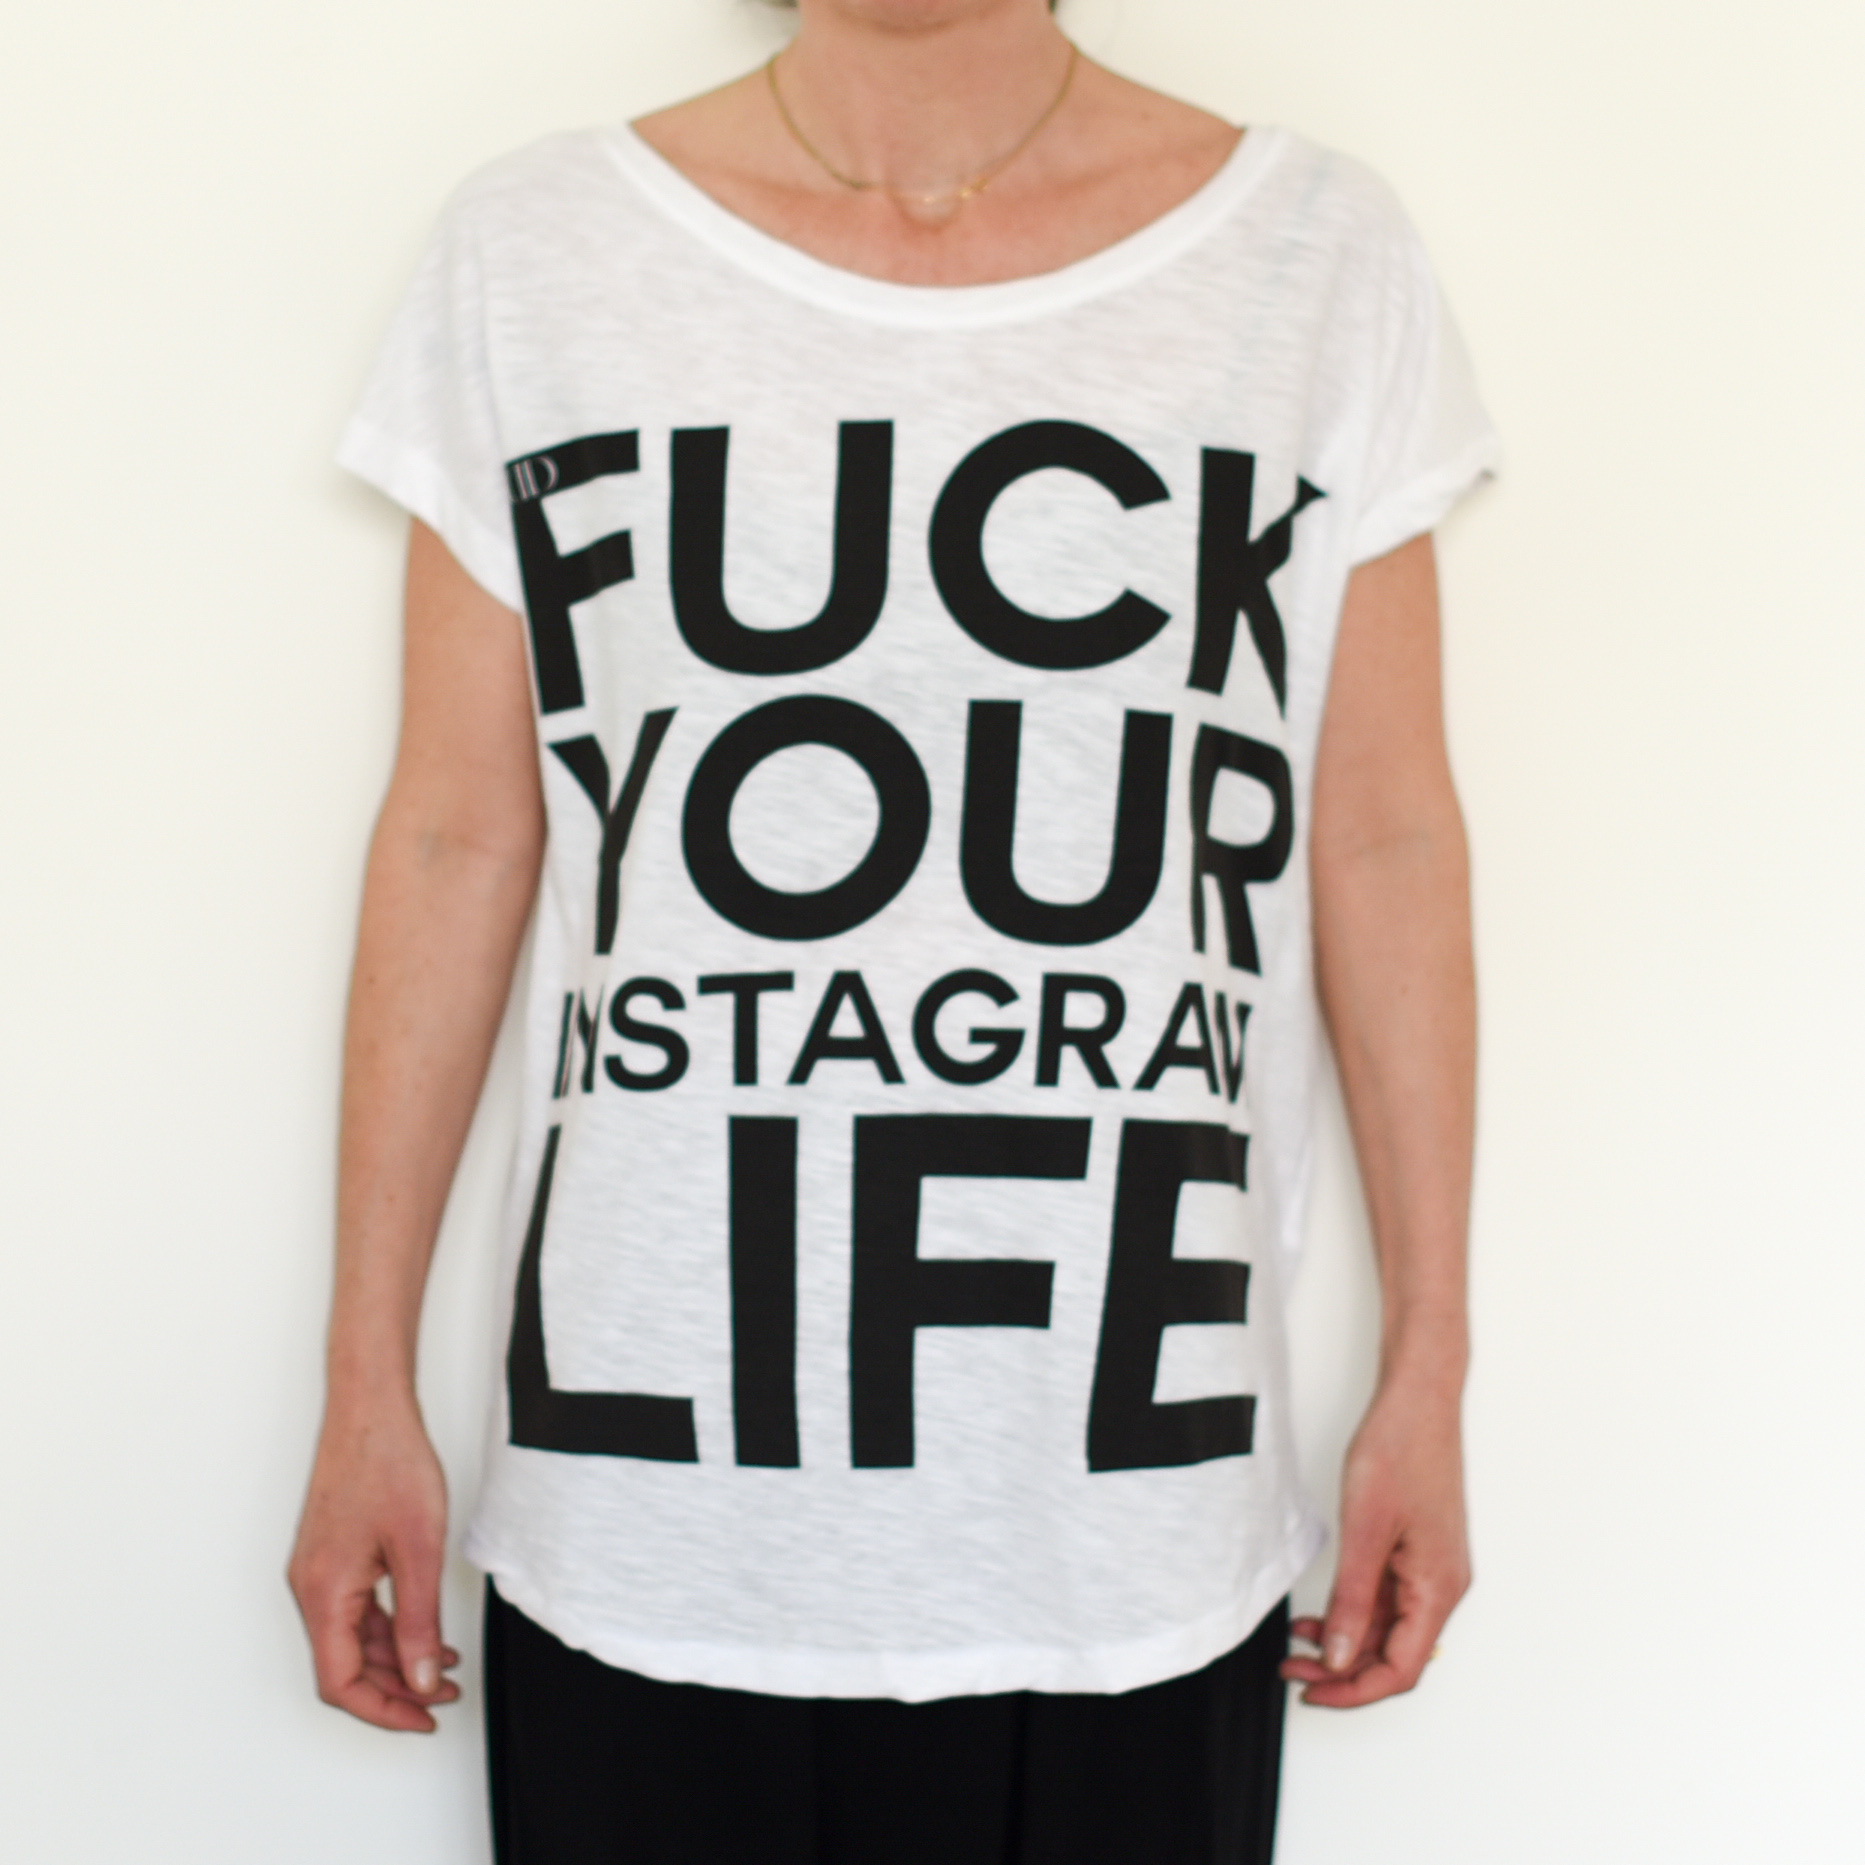 Deportment Department Fuck Your Instagram Life T shirt white worn